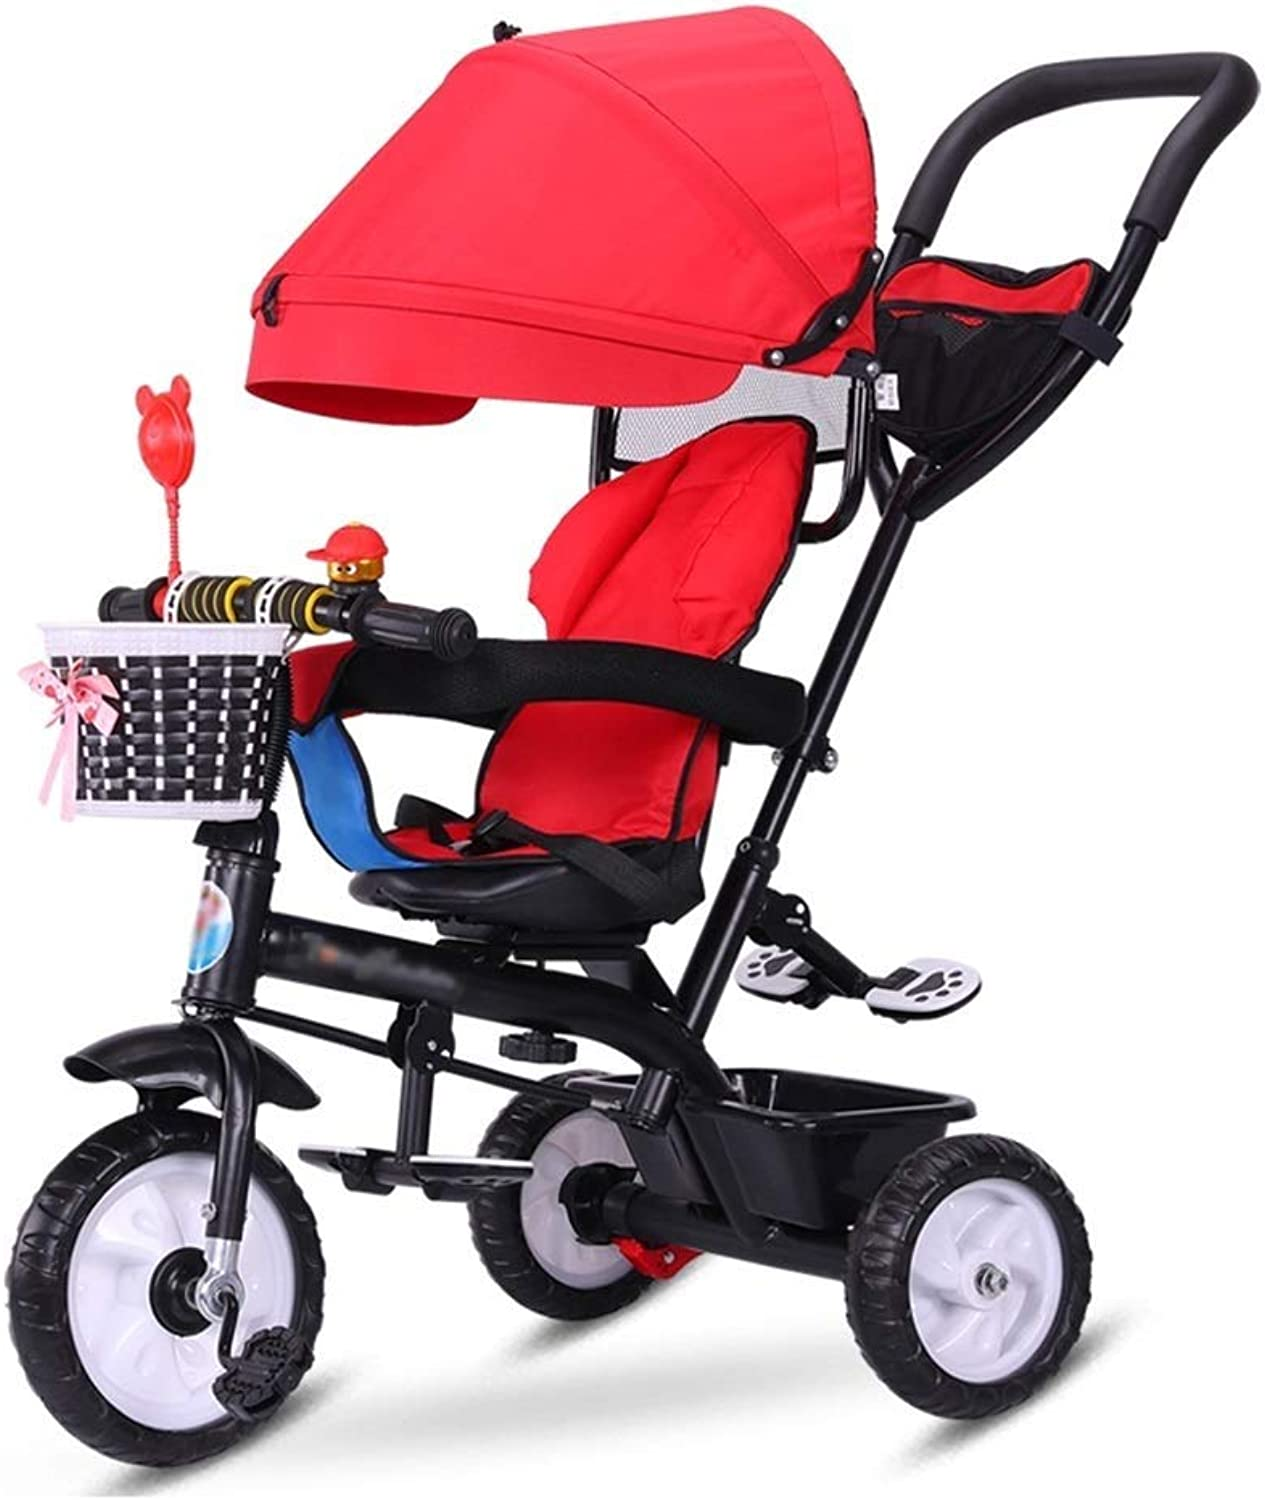 Baby cart Stroller 2-in-1 stroller travel system collapsible stroller with reversible base Tricycle